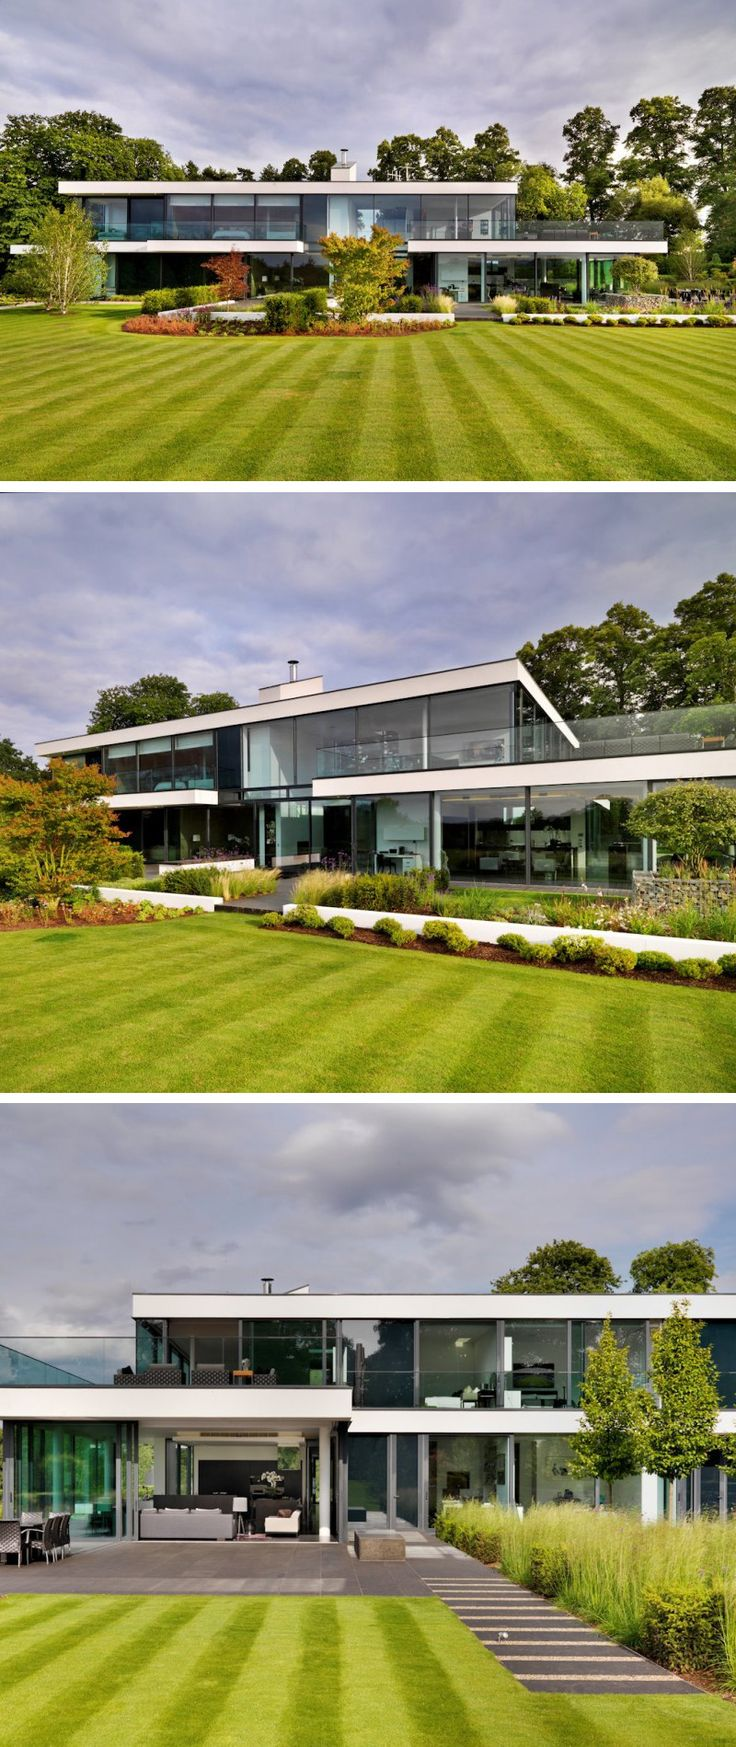 Gregory Phillips Architects have designed Berkshire, a family home recently completed in England.